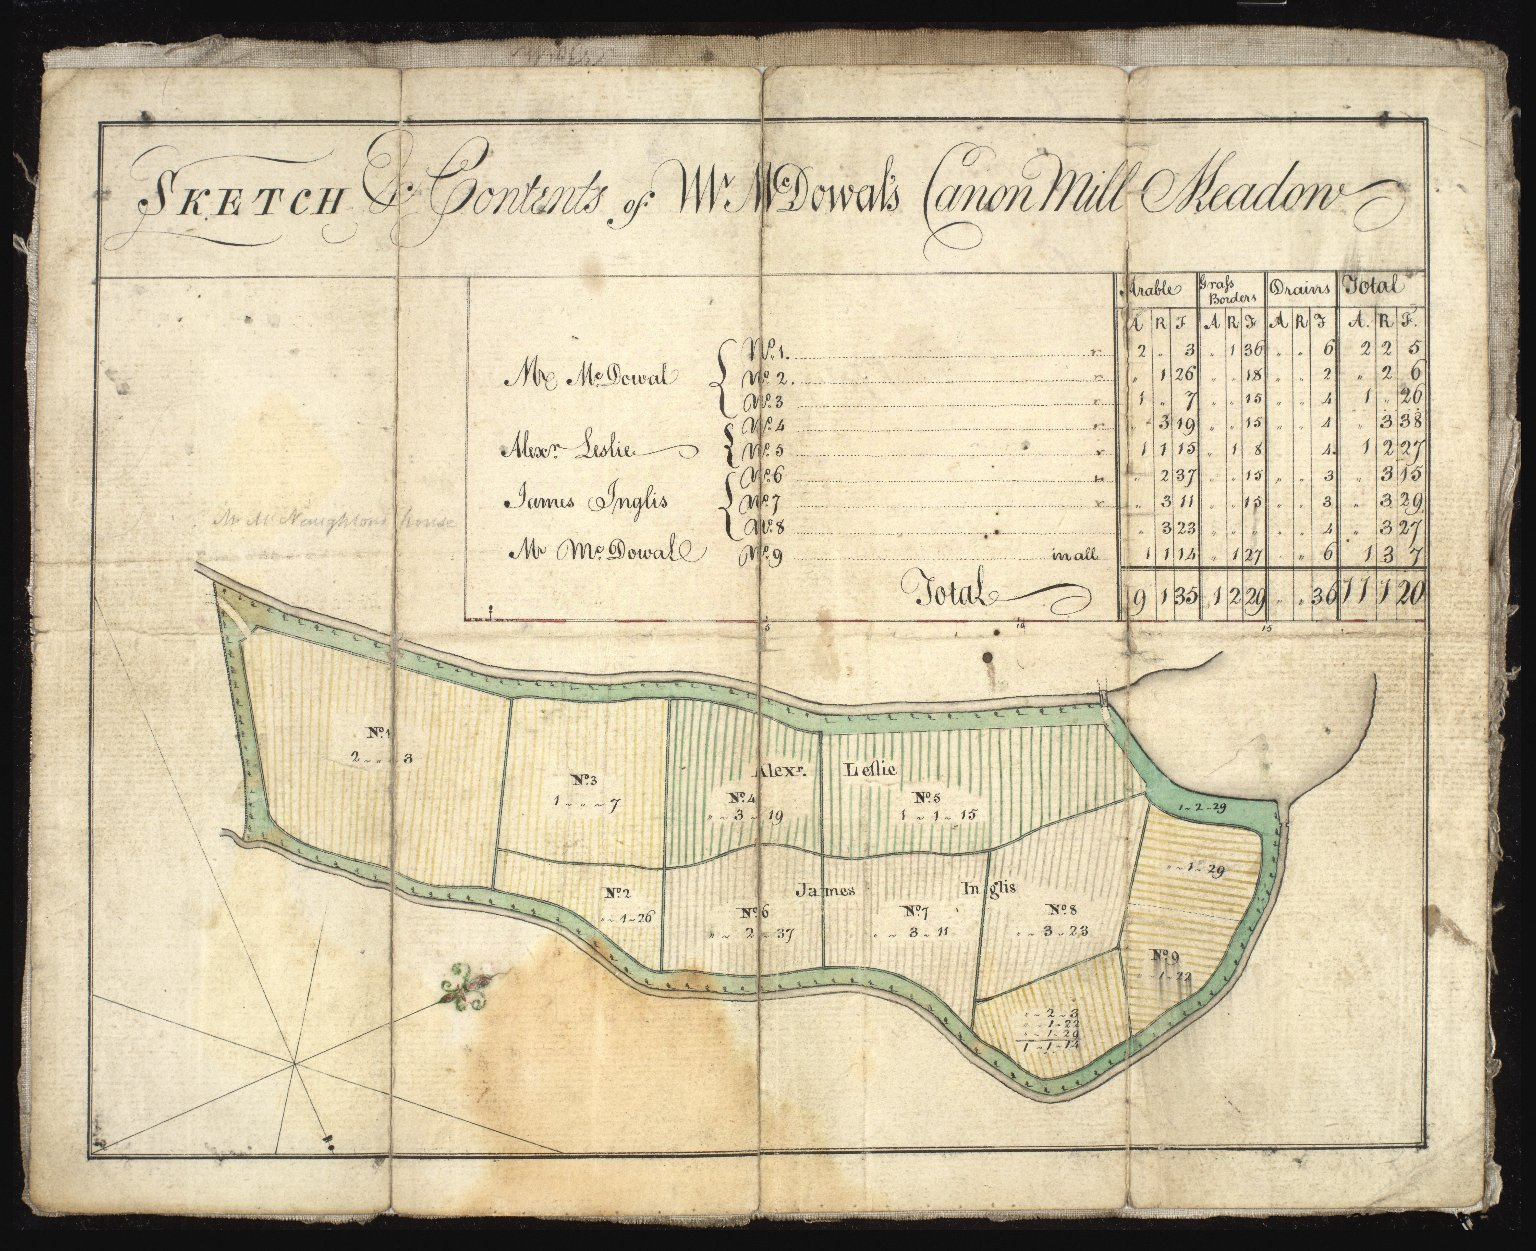 [Plan of Mr. McDowals Canonmills Meadow, with contents] [1 of 1]